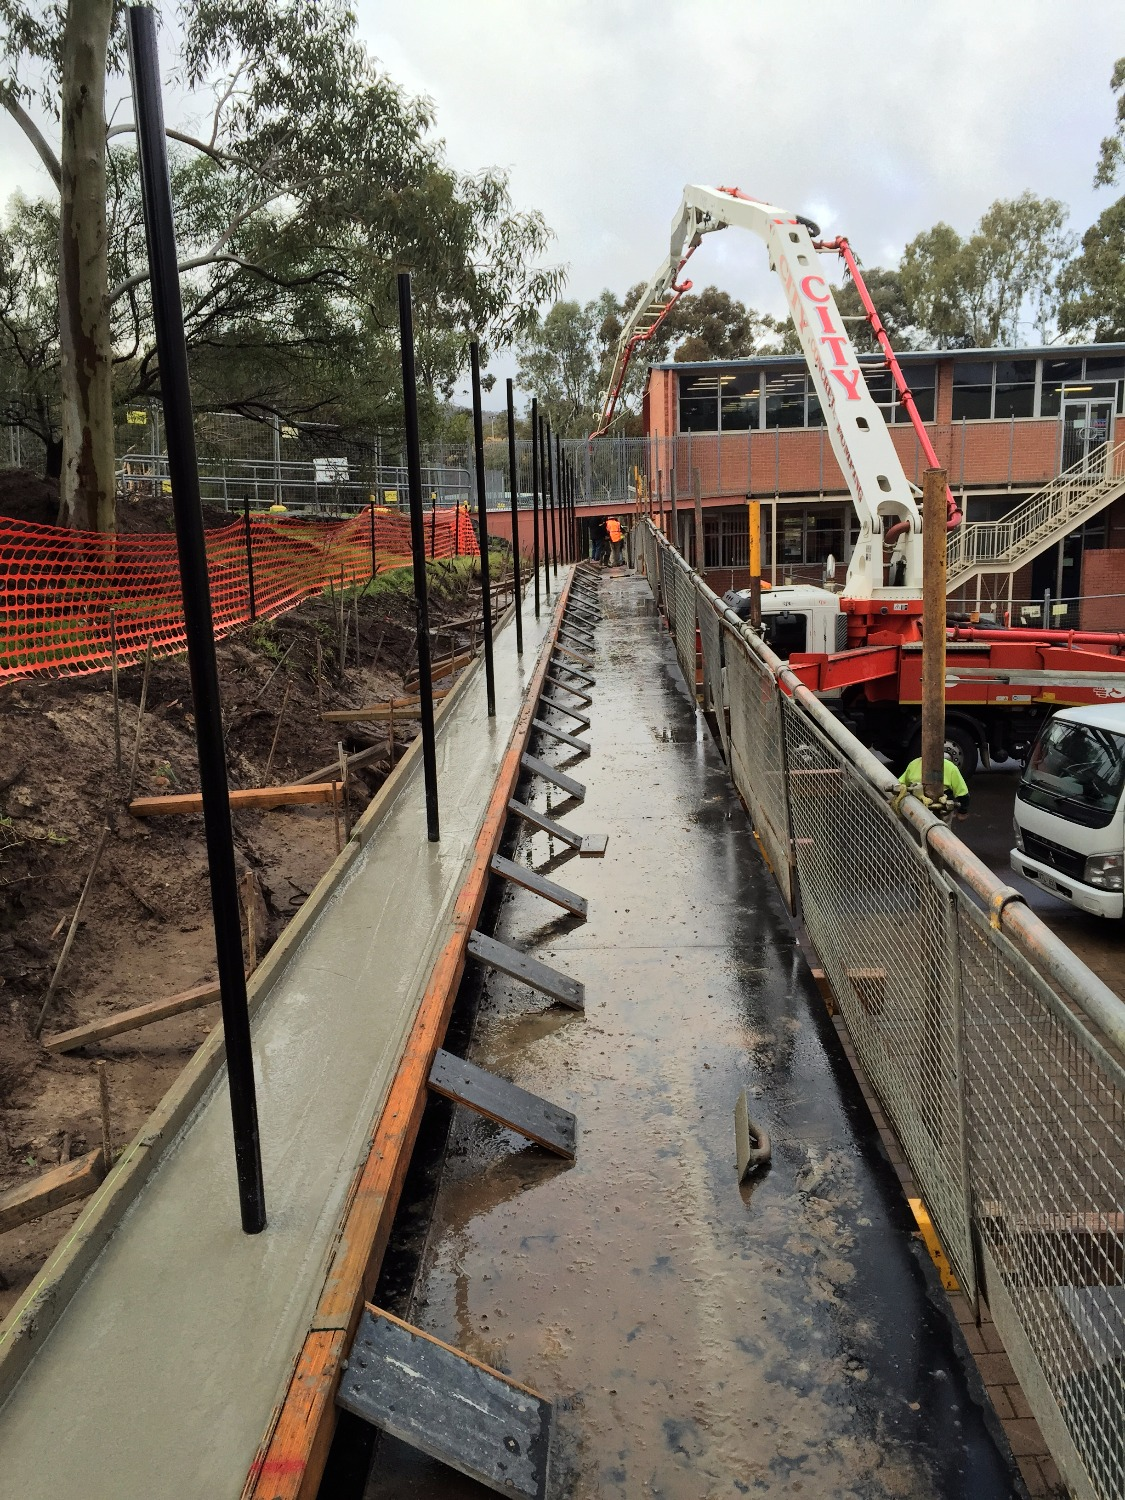 Property Services - Retaining wall Remediation (2)_edited